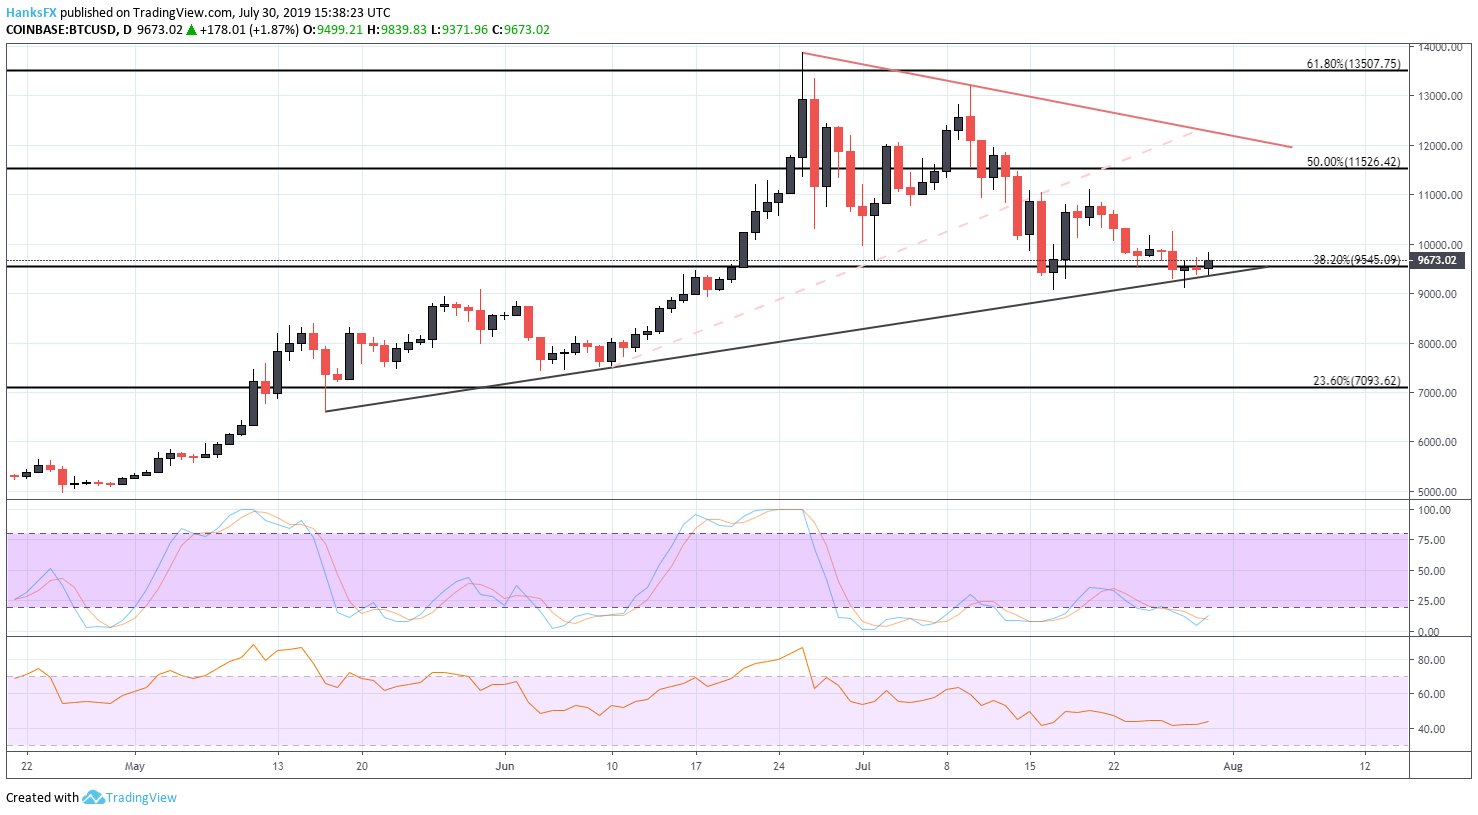 Bitcoin Price Chart is Coiled like a Spring, will it Bounce or Break?